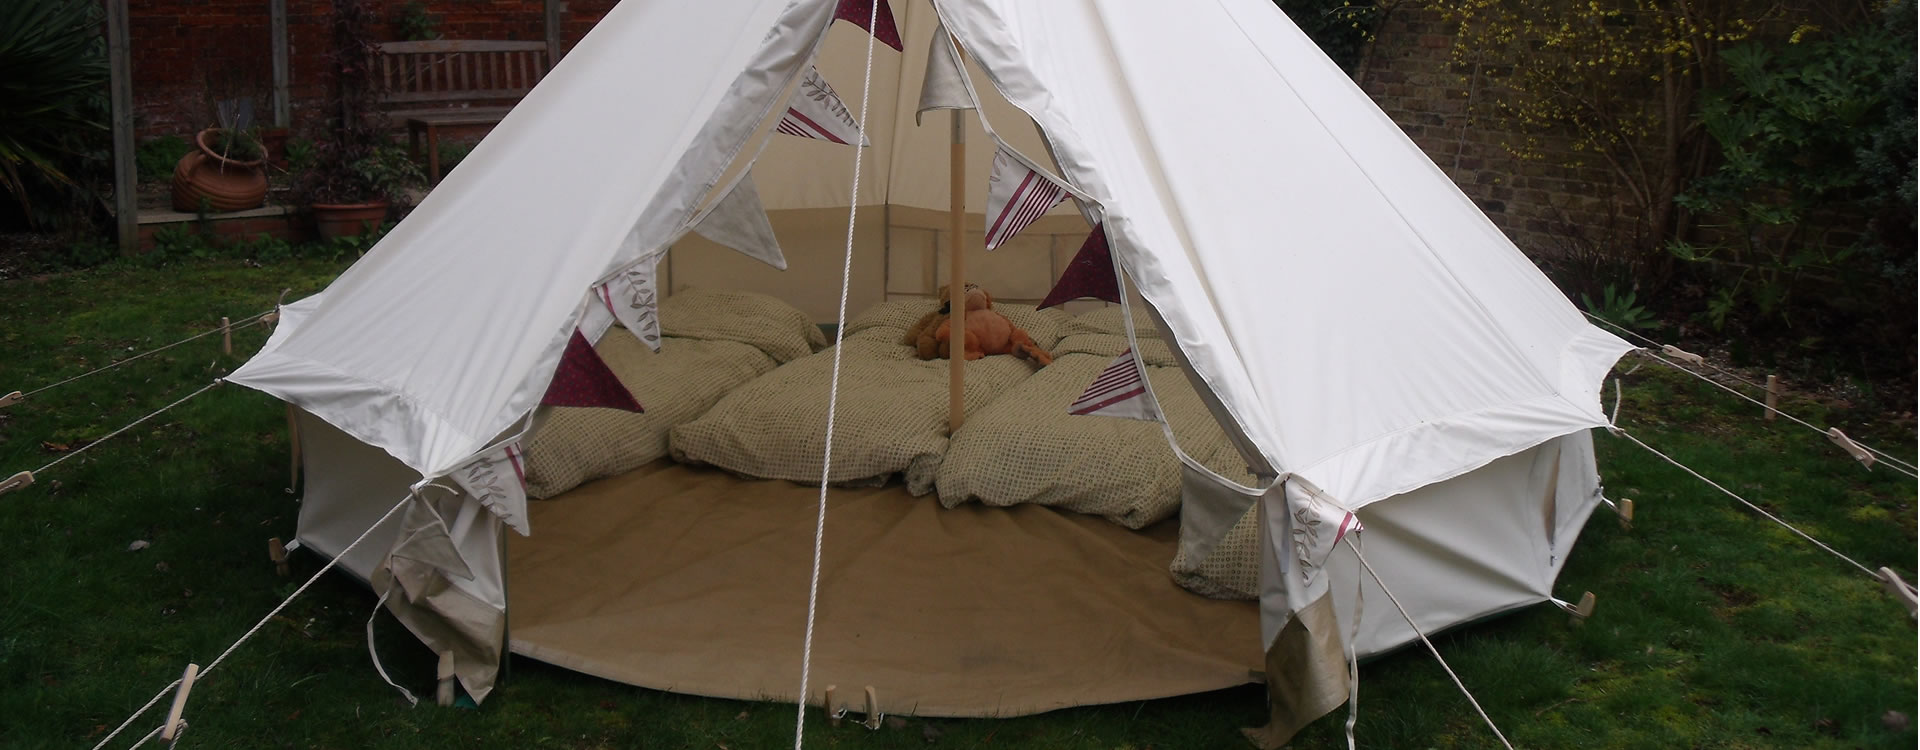 full-width-bell-tent-2 & Luxury Bell Tent Accommodation hire for parties festivals ...